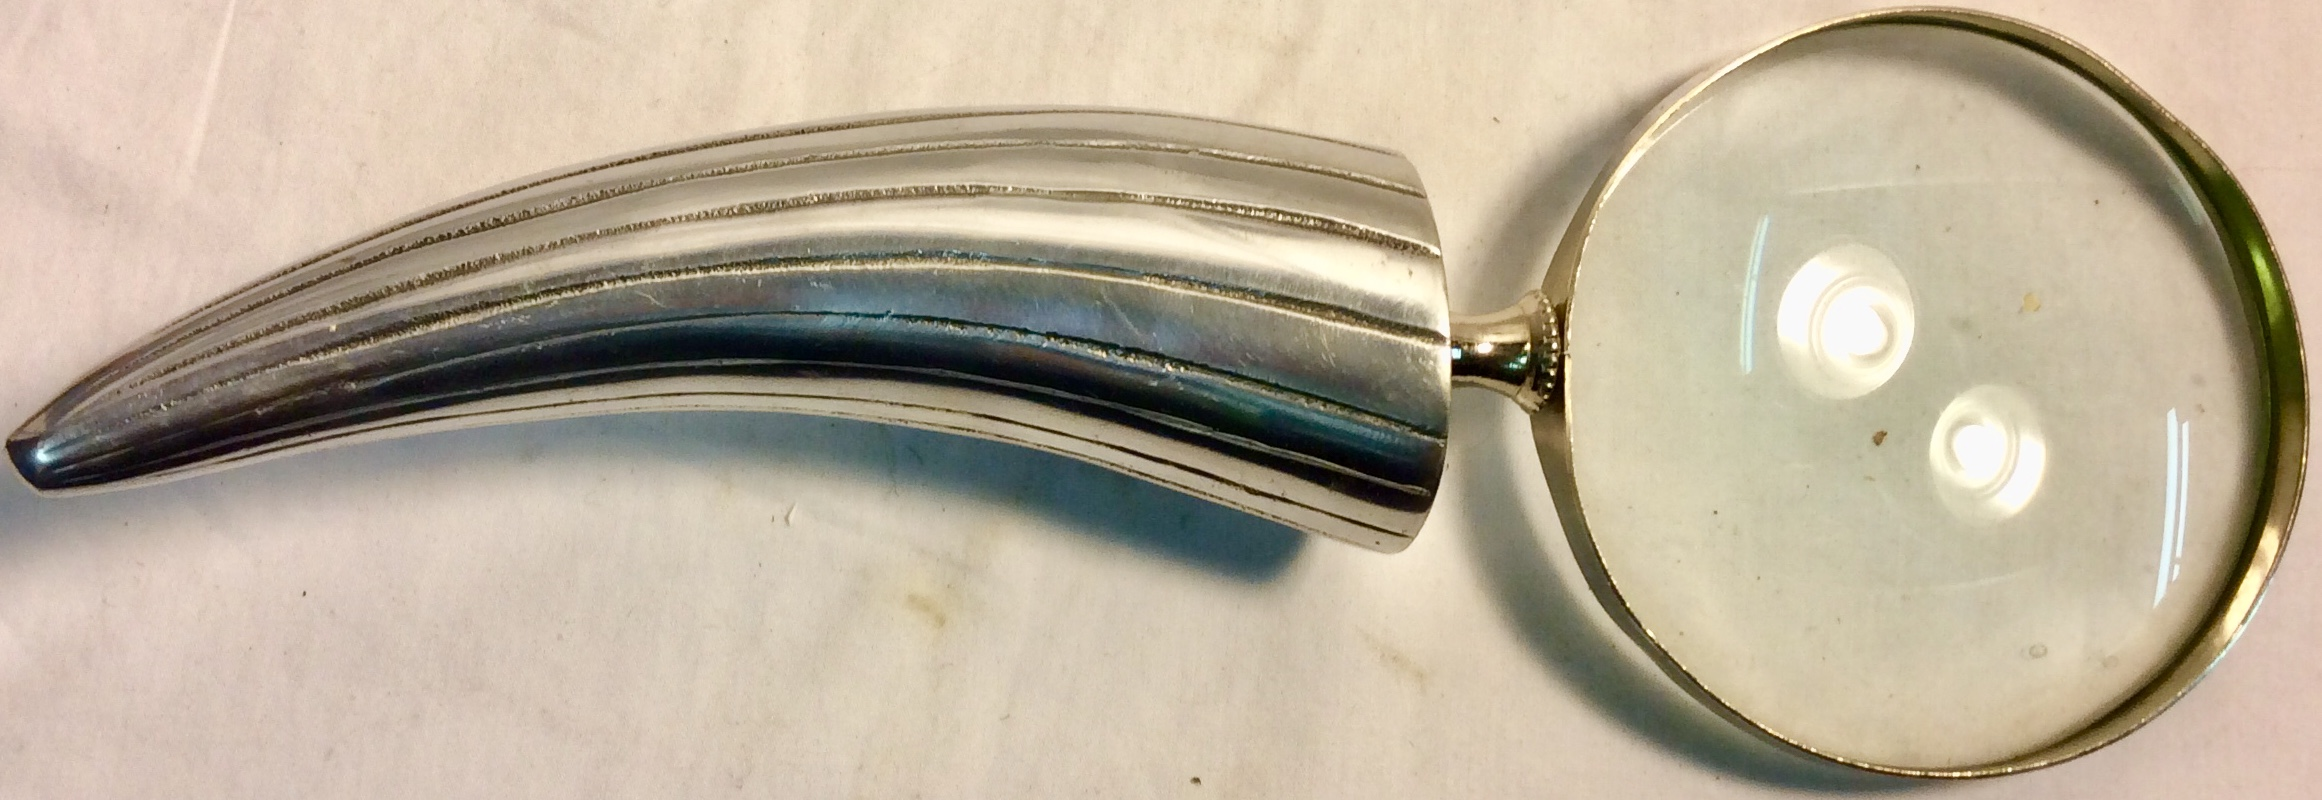 Magnifying glass with metal horn handle